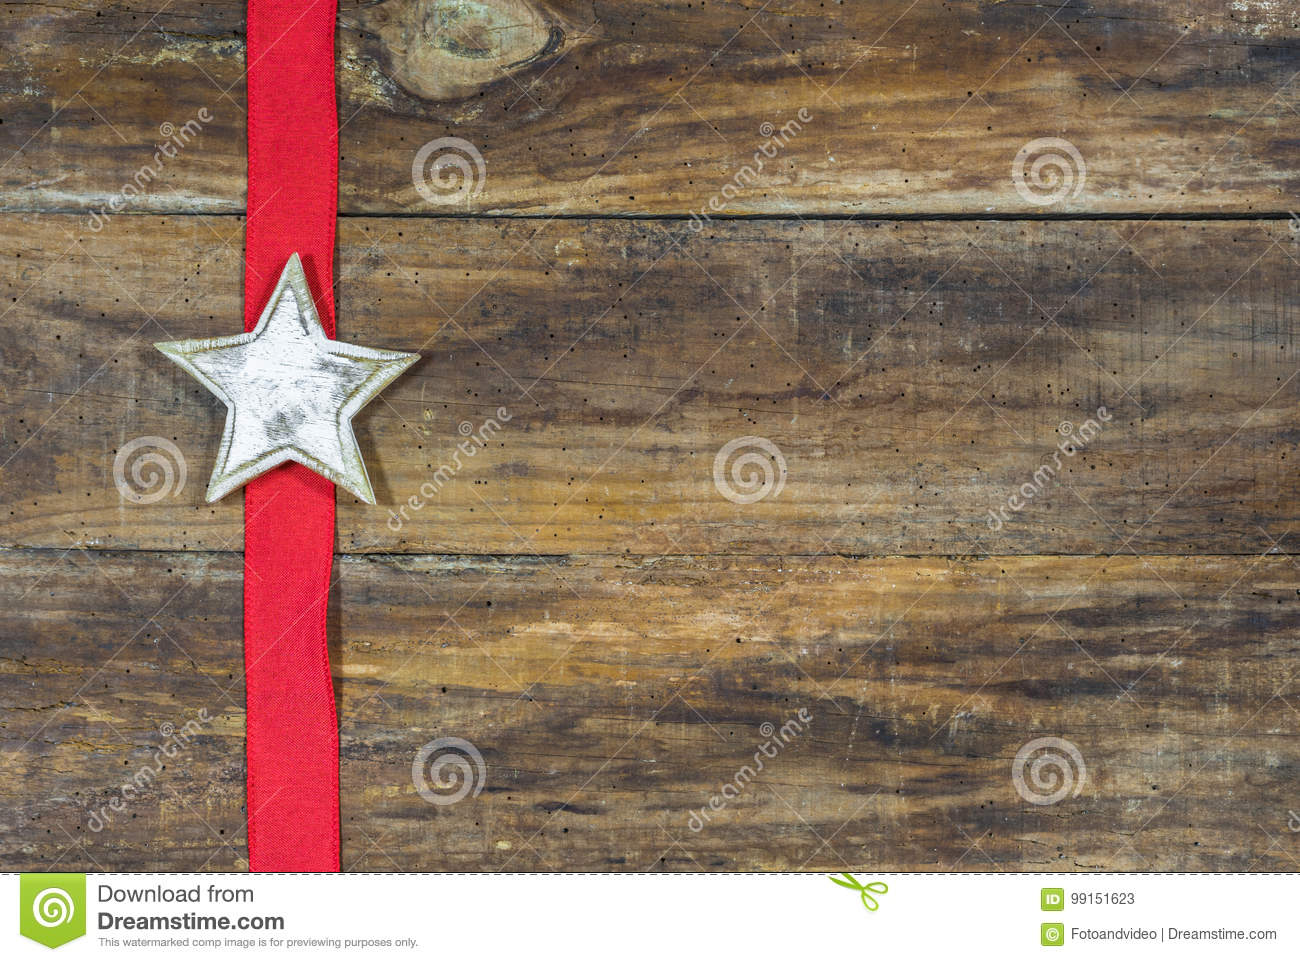 Rustic Christmas Star on wooden board with red ribbon.